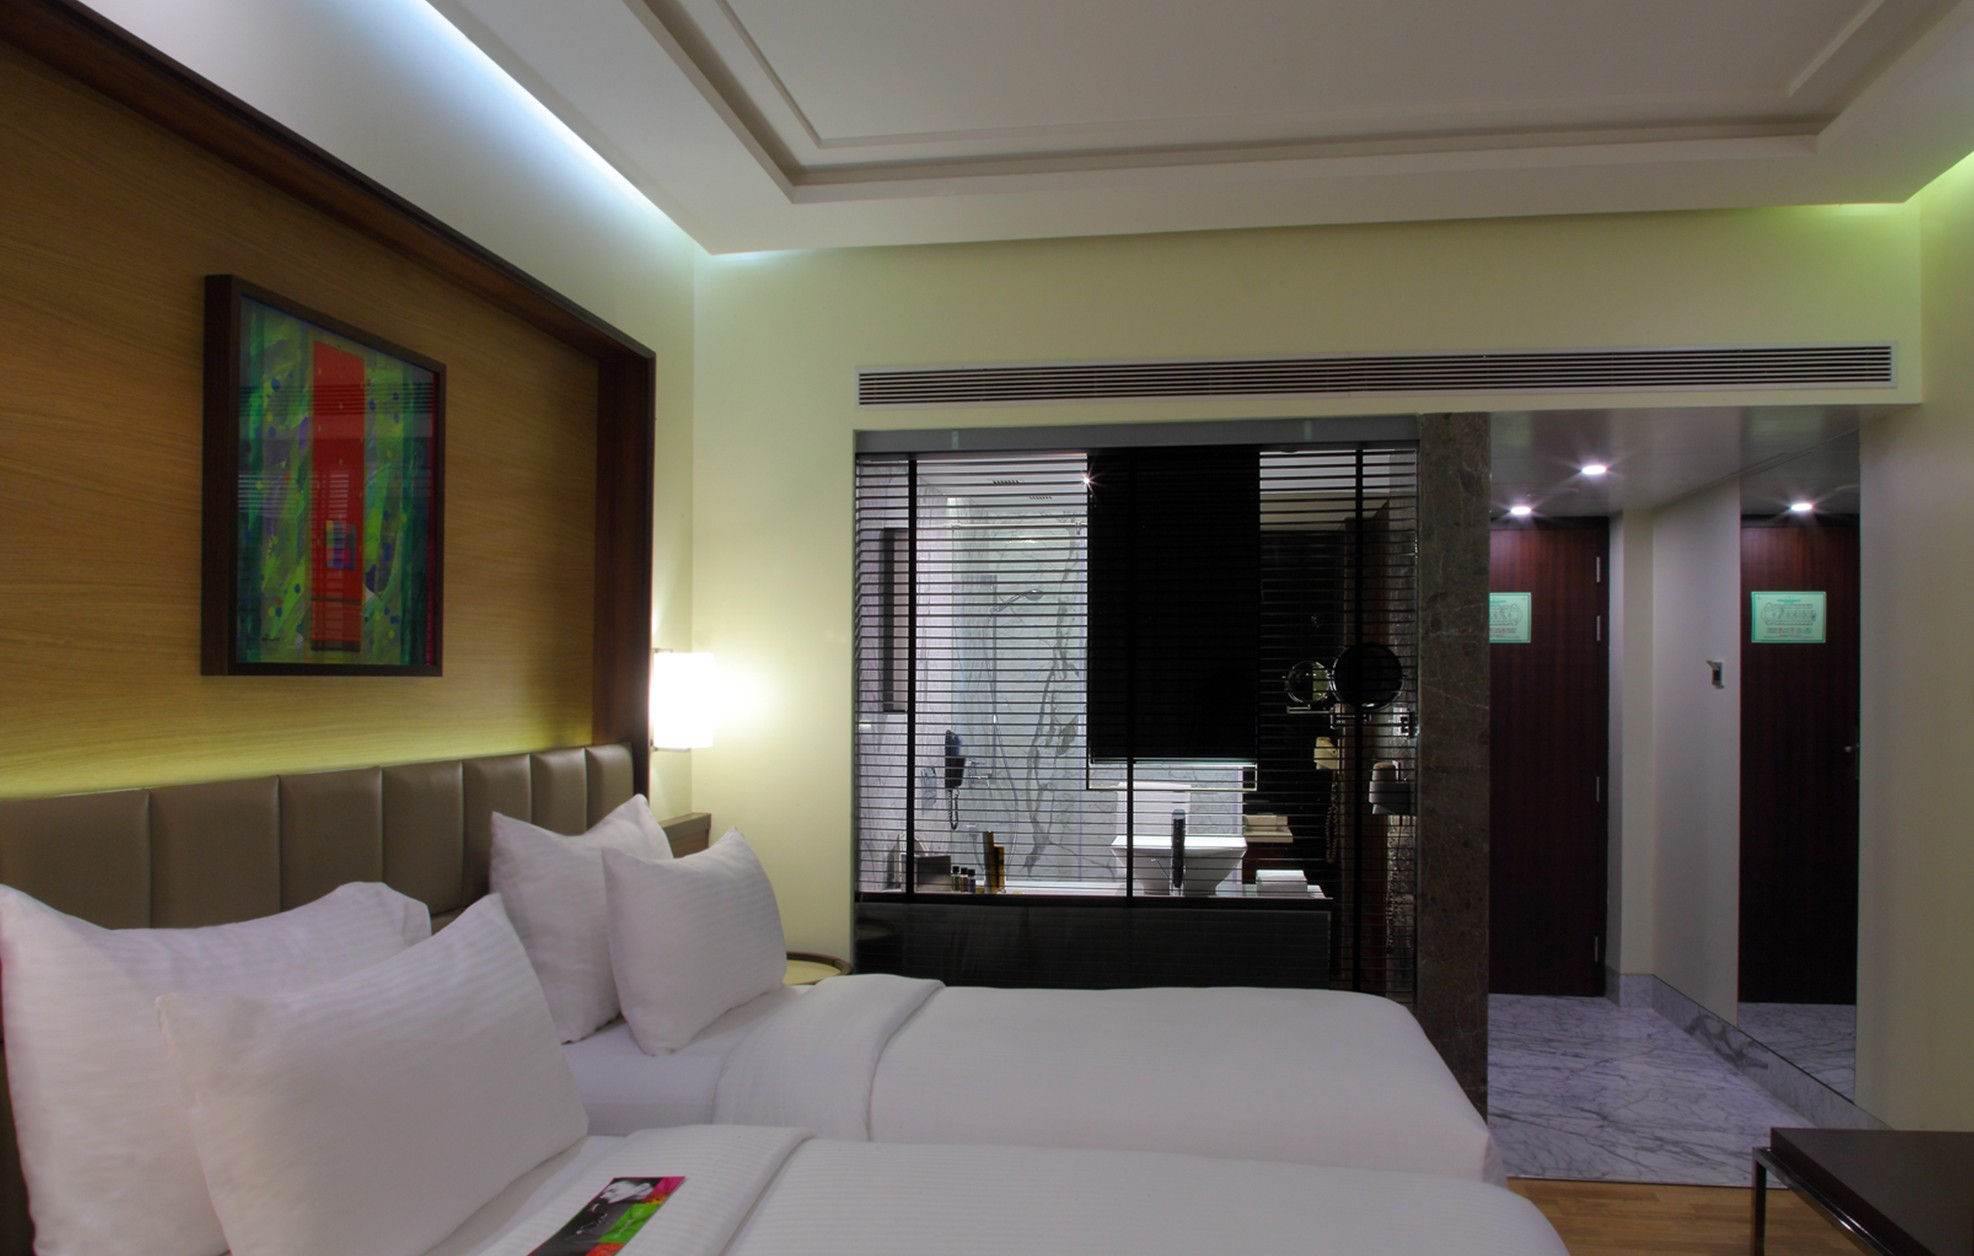 Club Myra Room Overview - The Mirador at Andheri East